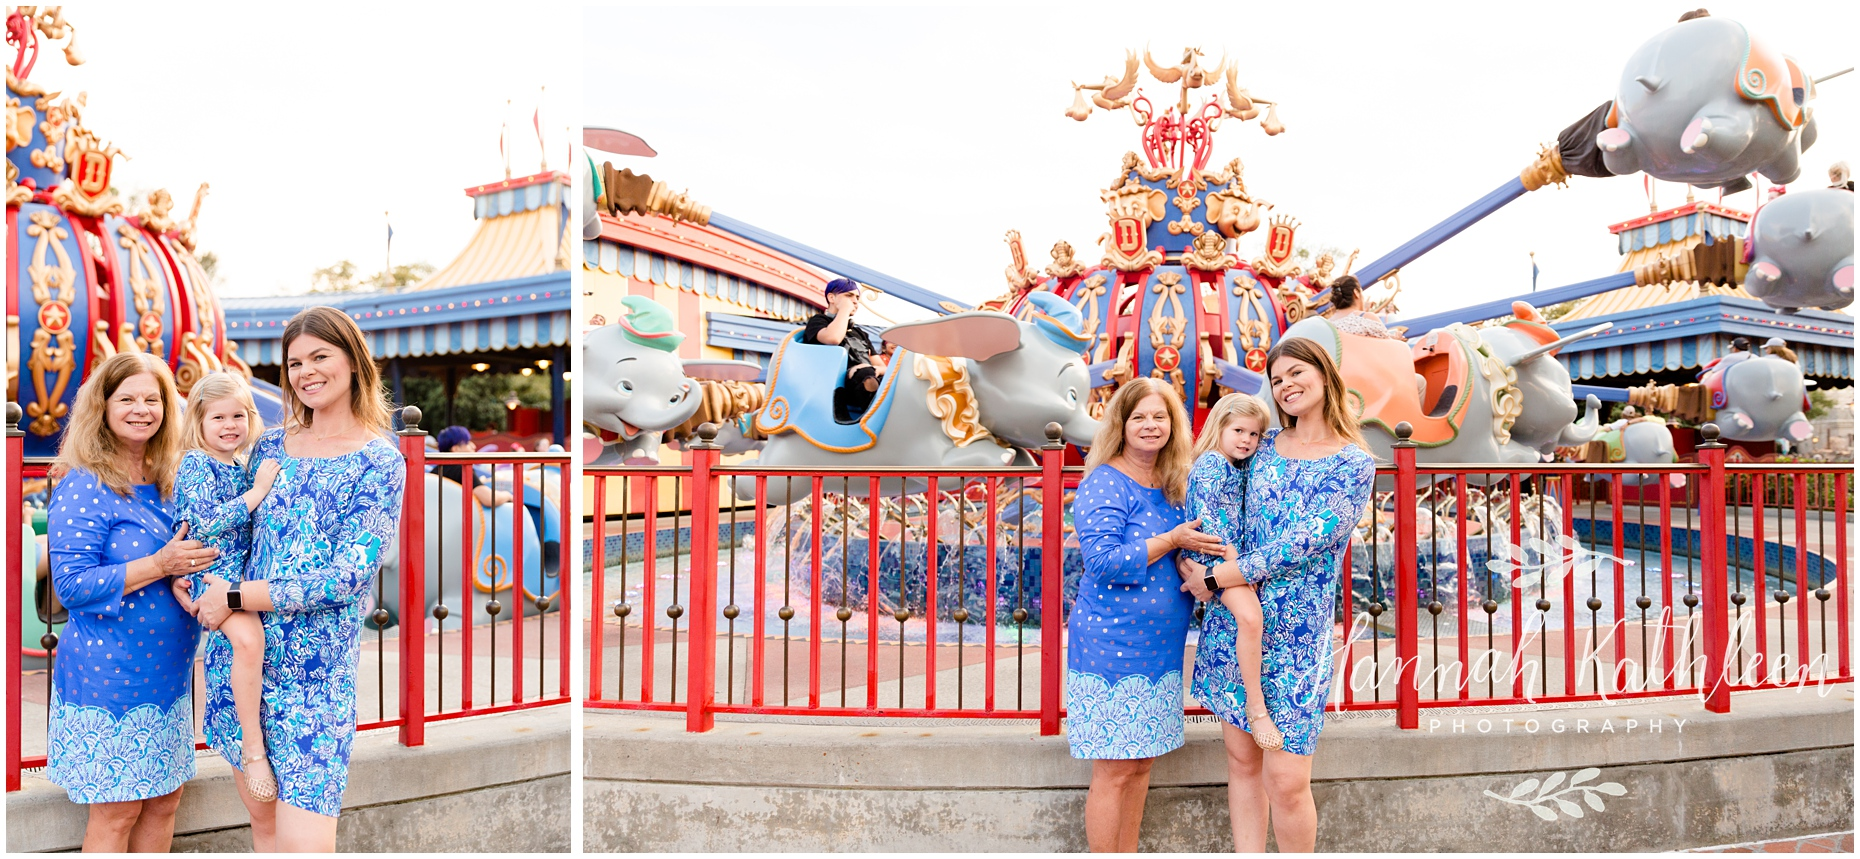 Donahue_Disney_Parks_Magic_Kingdom_Disneyland_Family_Photography